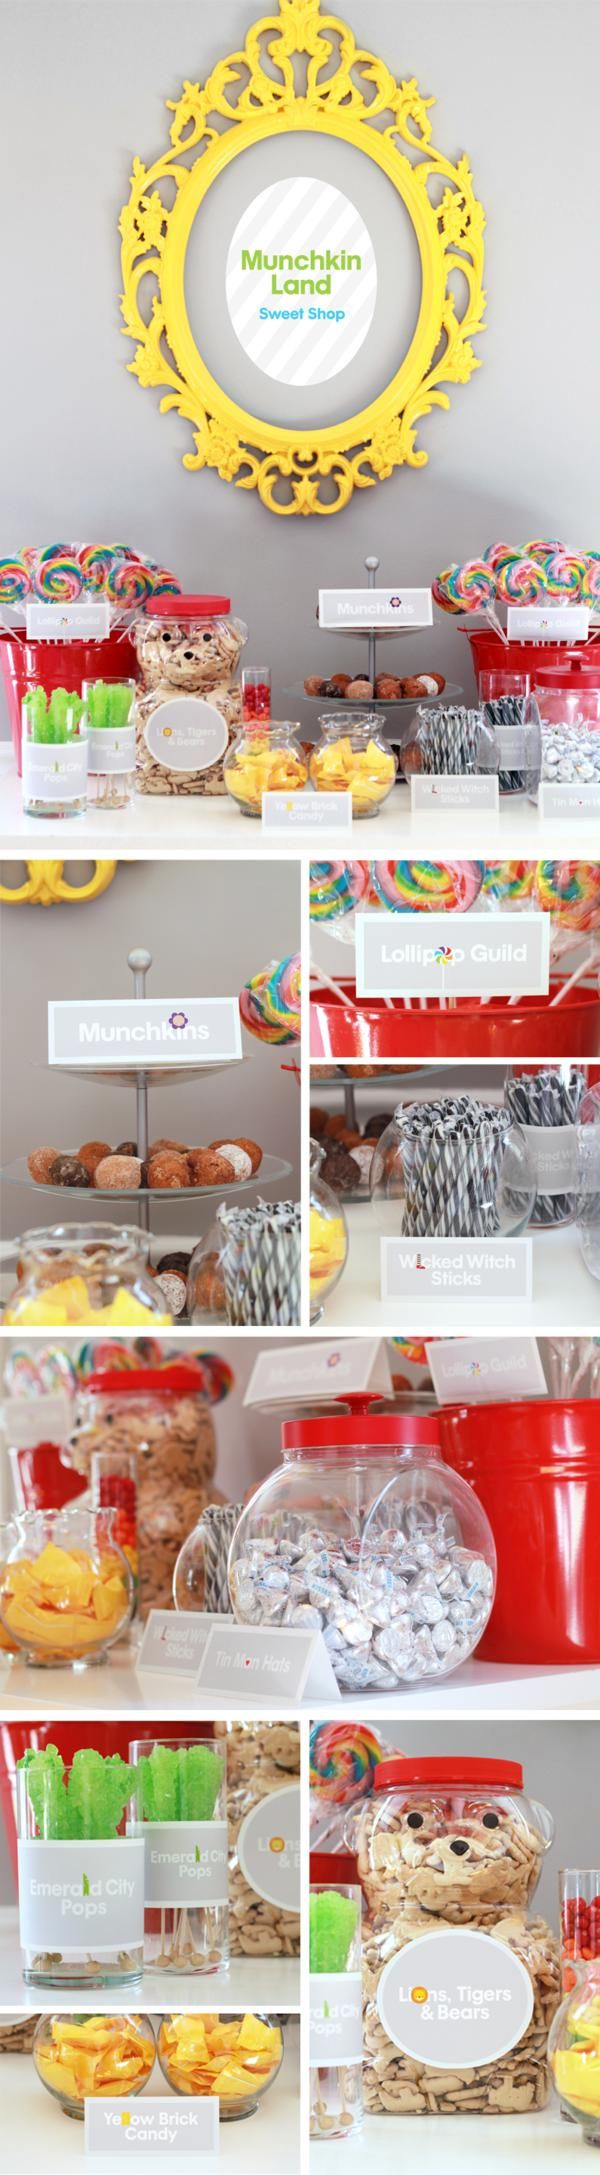 This is the most clever child's party I have seen in a long time. Heck...I would LOVE to have this theme for my own party!! LOL totfudge_oz_munchkinland_600x2175